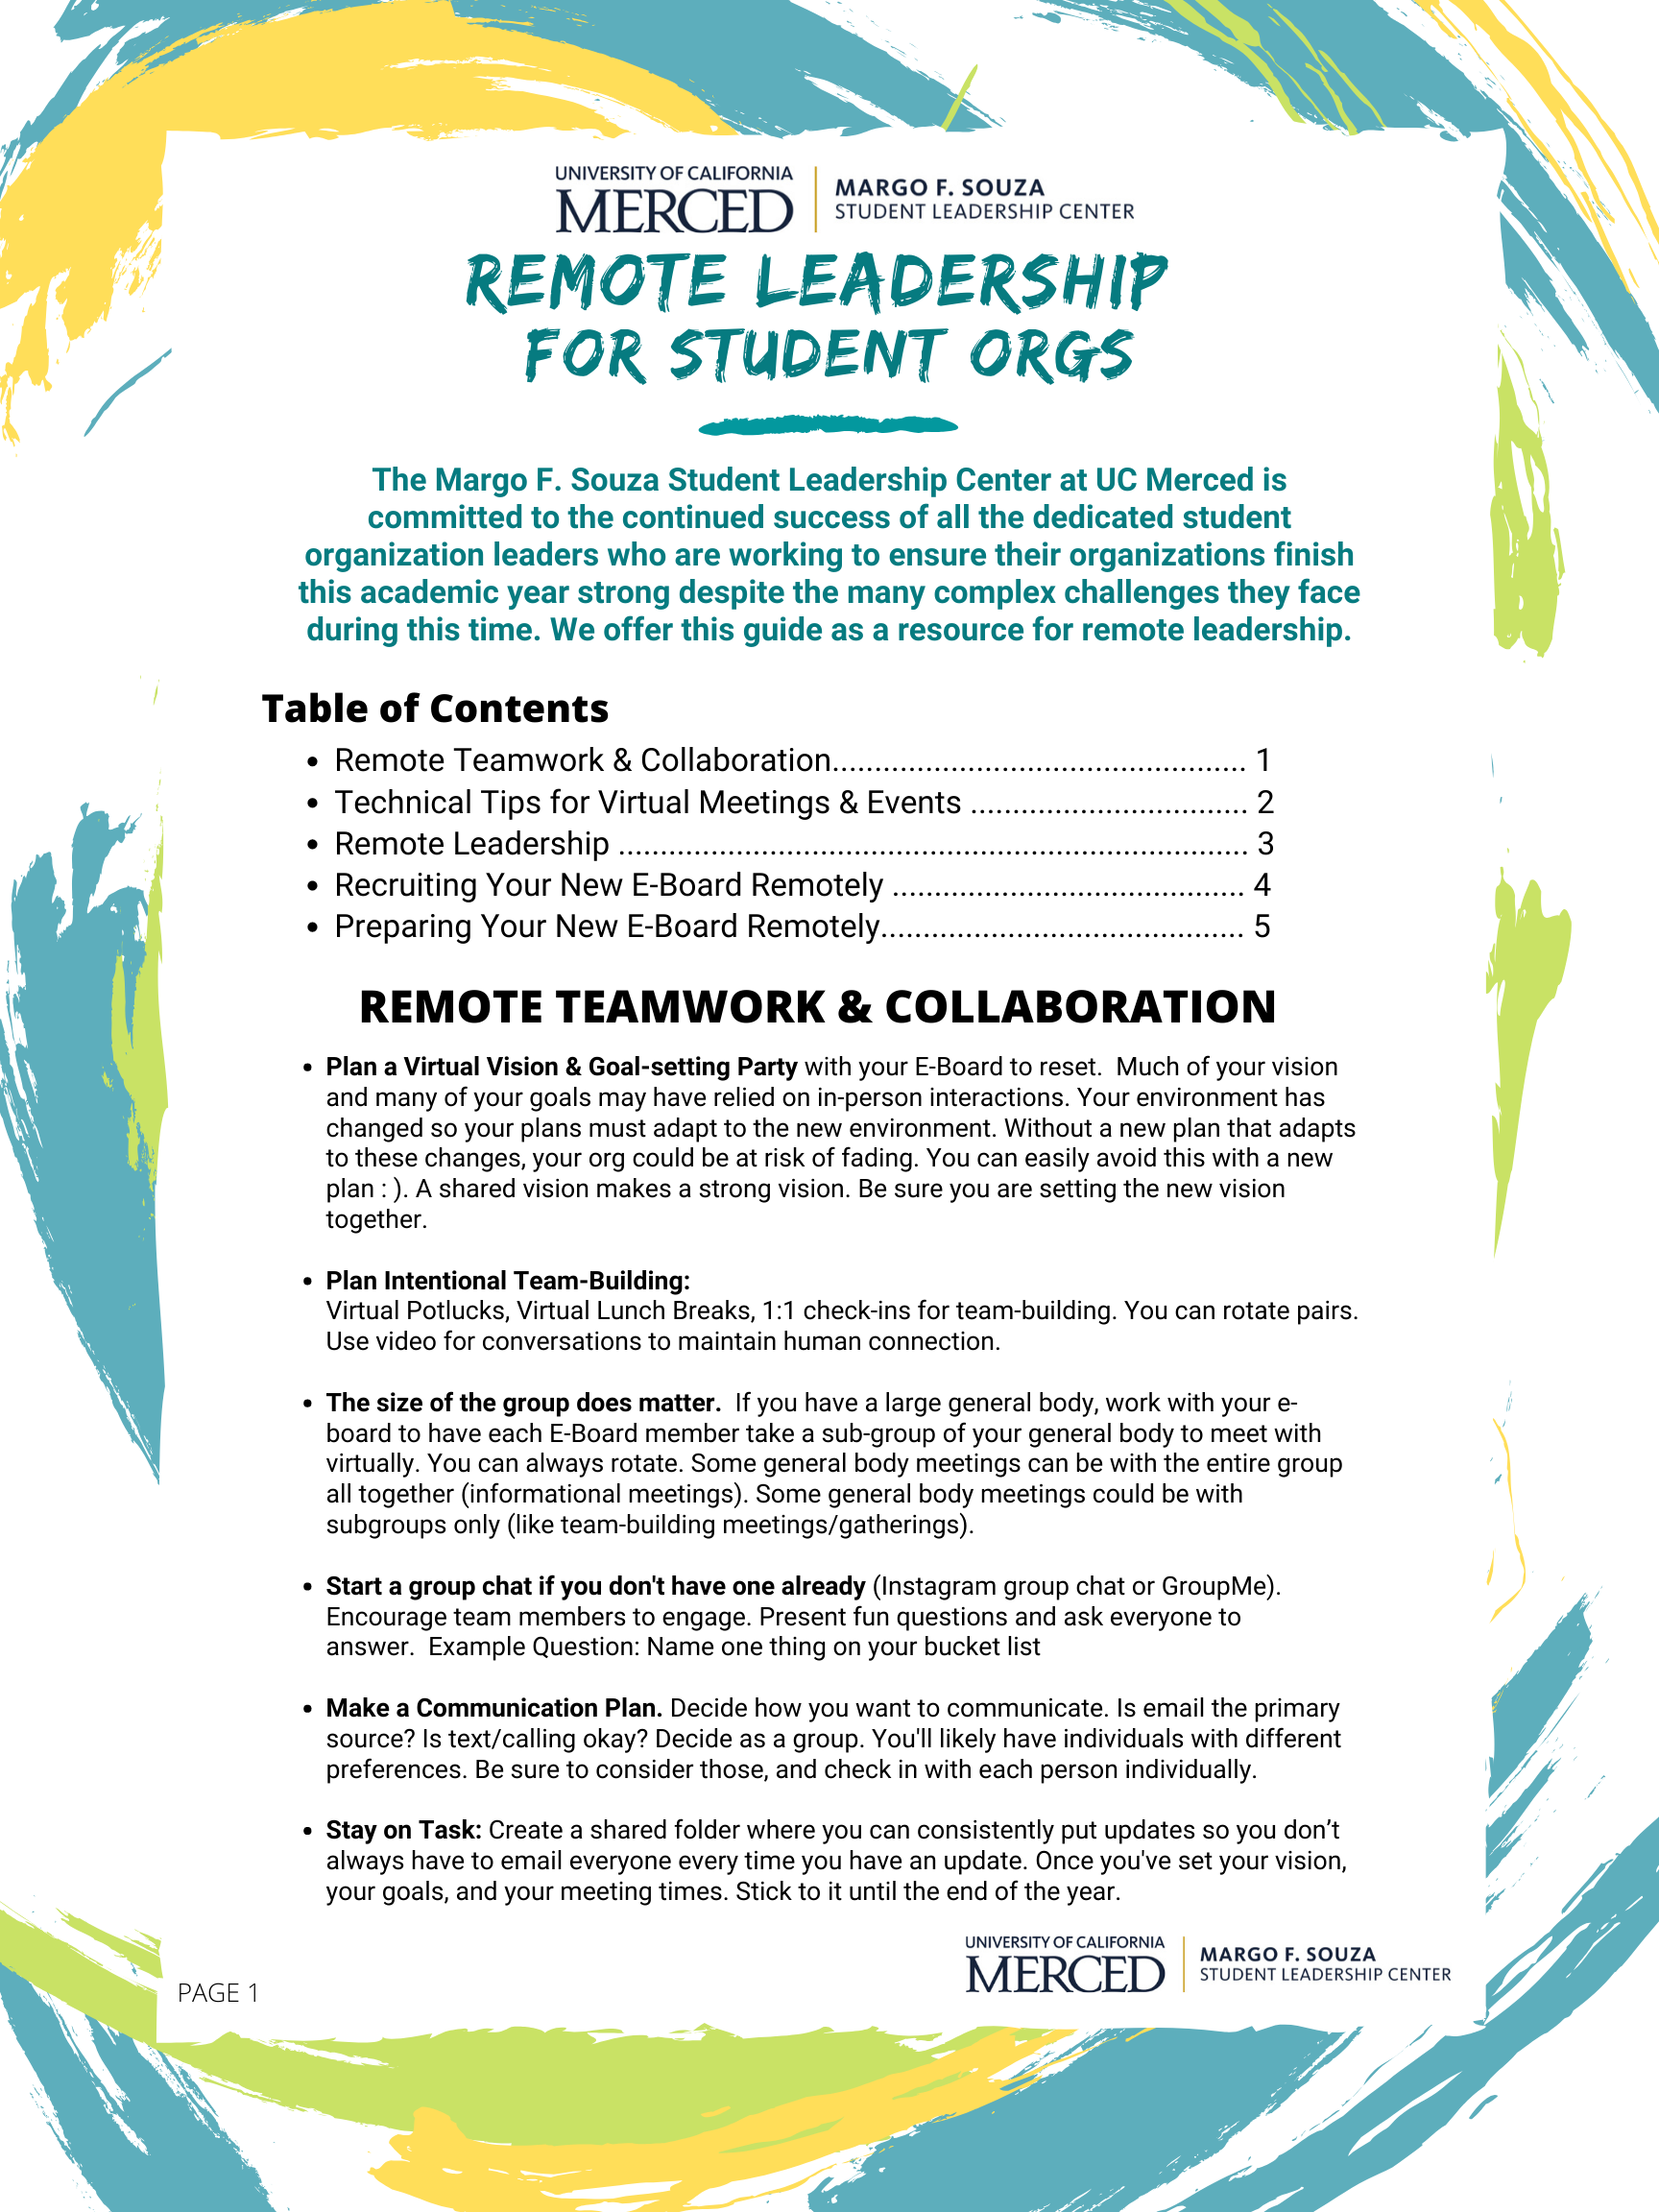 GUIDE: Remote Leadership for Student Organizations - Now Available!